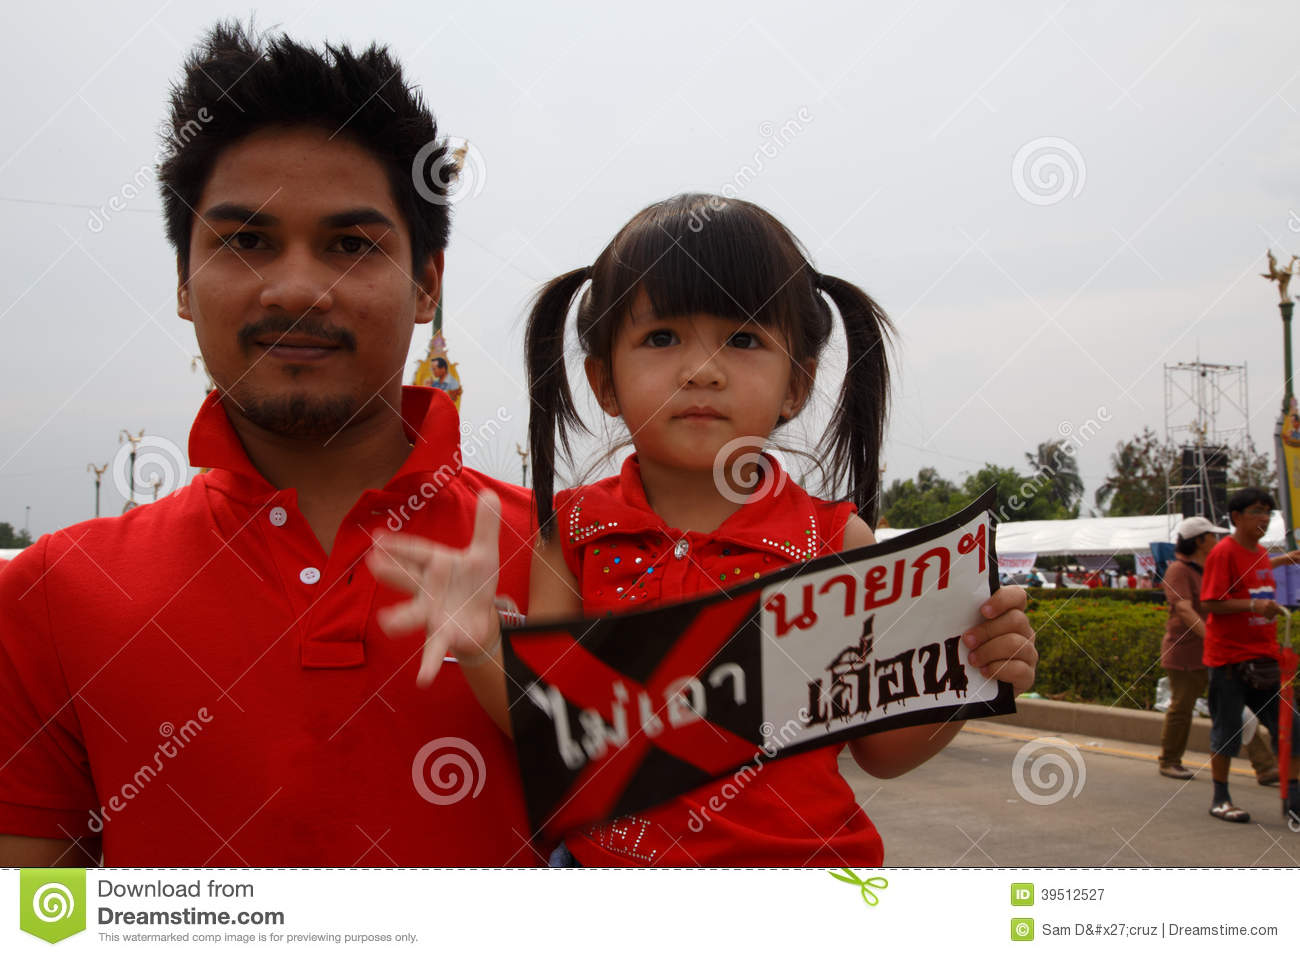 BANGKOK - APRIL 5 2014: Red Shirts Setup and protest at site in